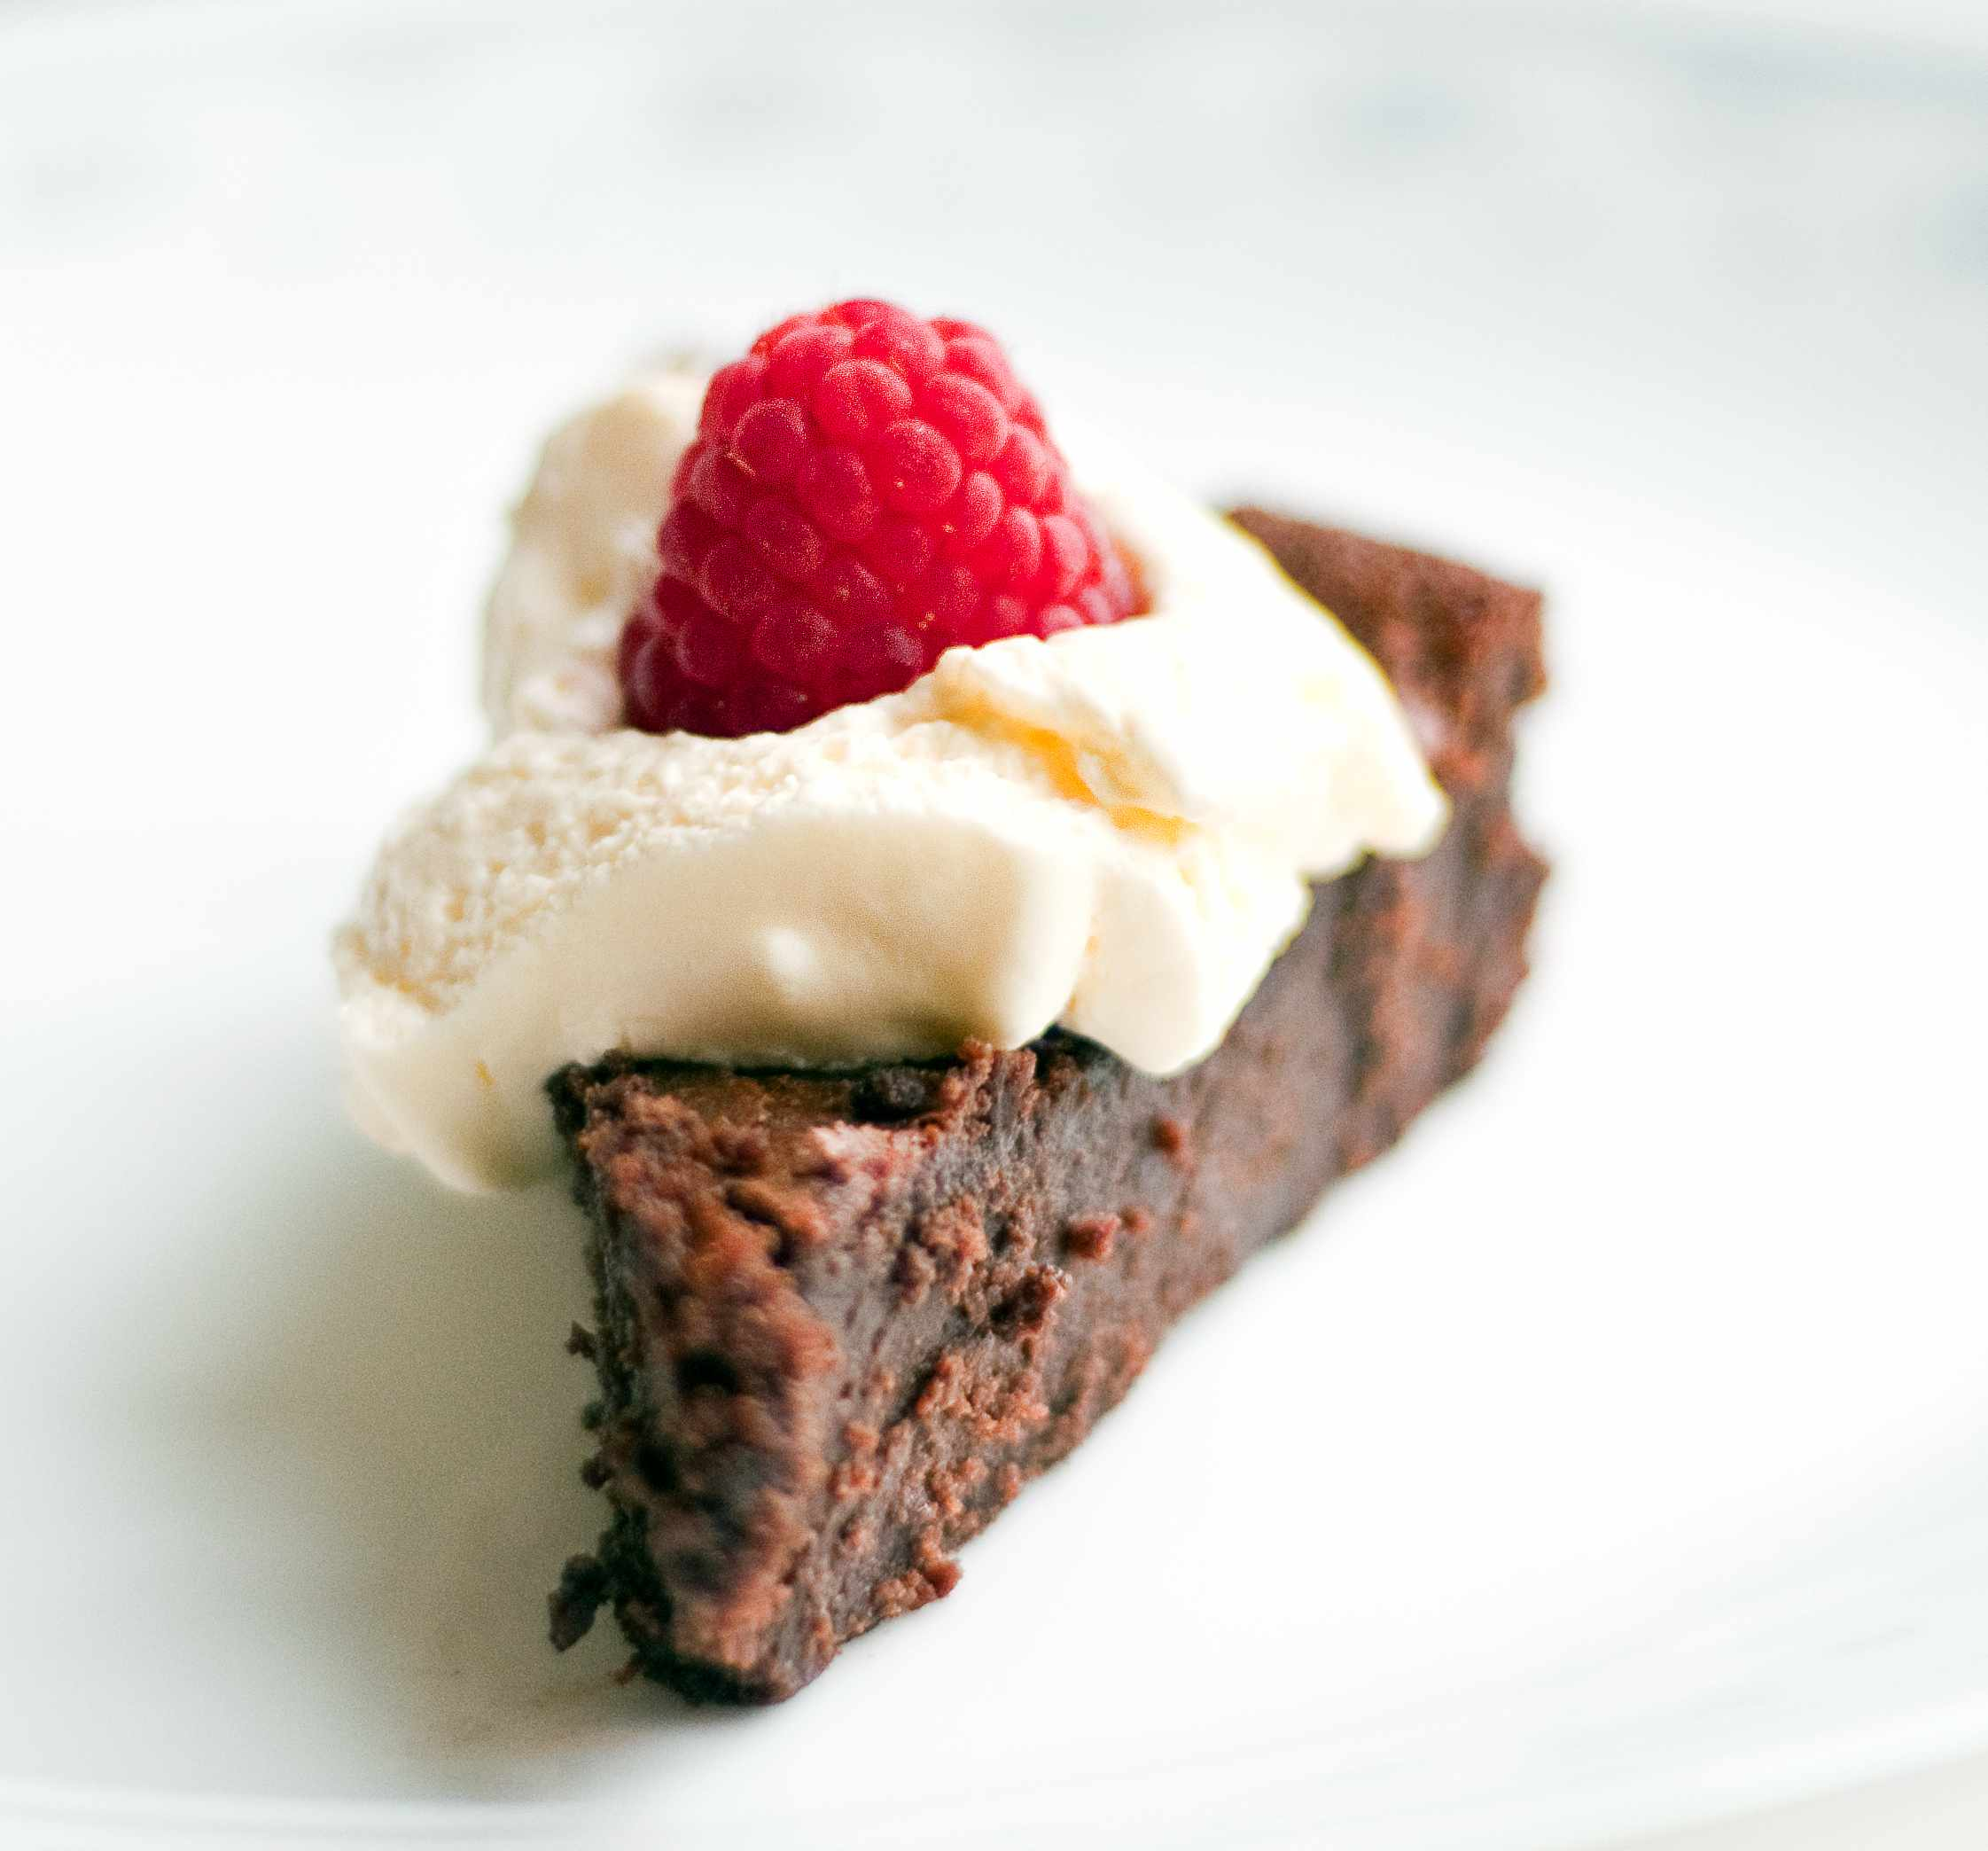 Gluten free flour-less chocolate cake with a raspberry on top